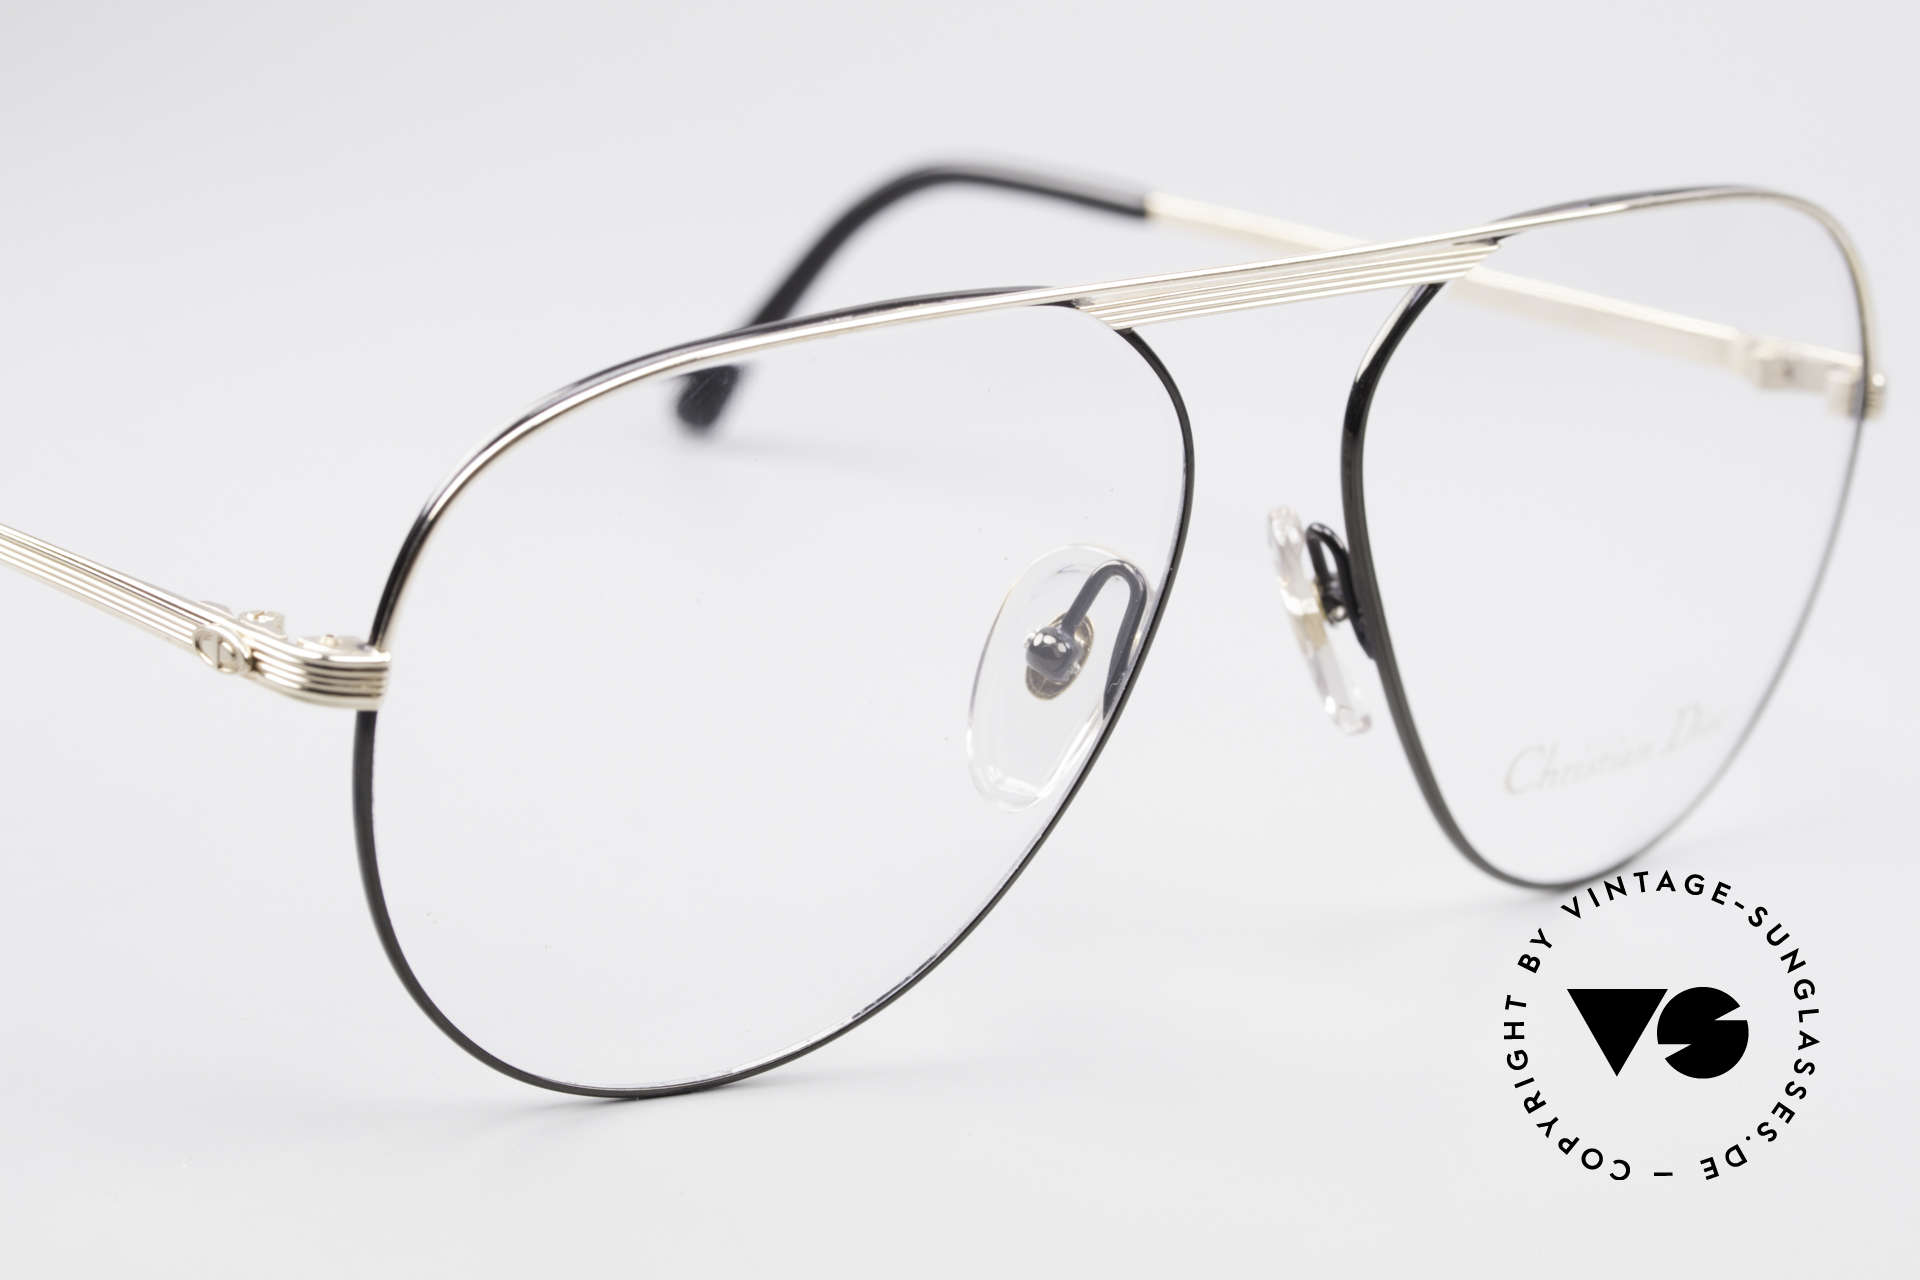 Christian Dior 2536 Vintage Aviator Glasses Men, NO retro specs, but an old original from 1989!, Made for Men